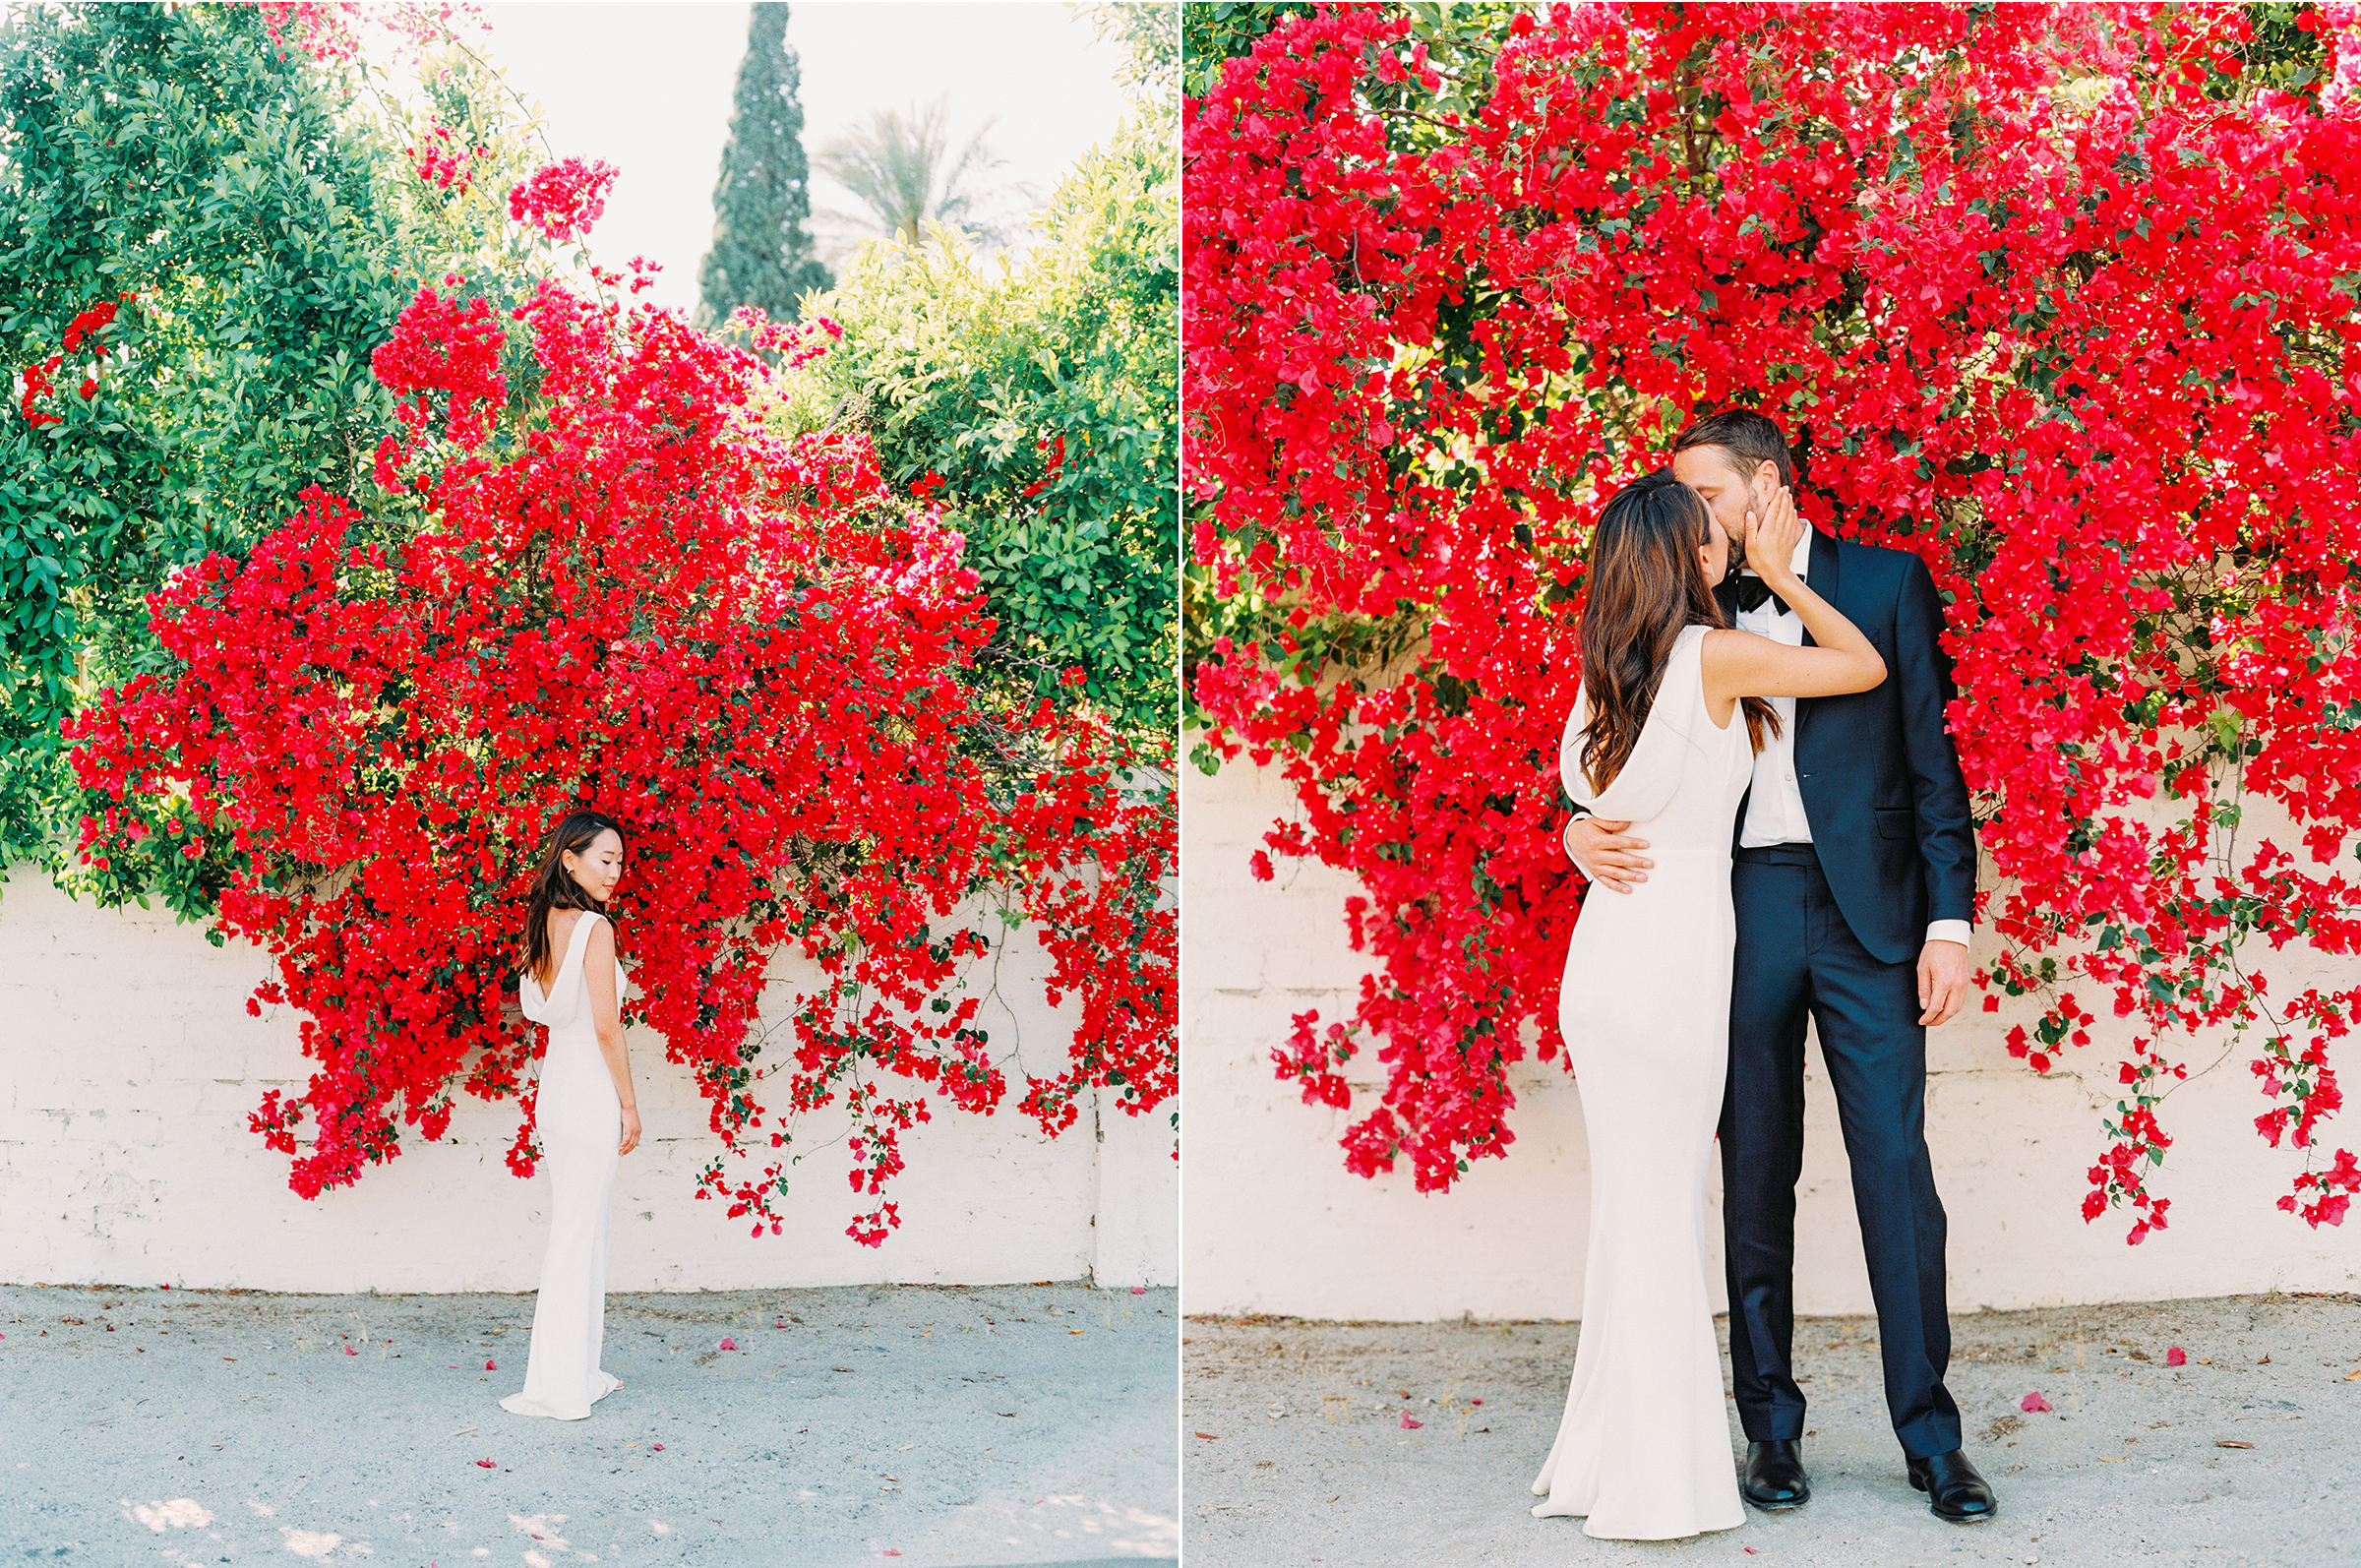 katie stoops photography-palm springs engagment session22.jpg